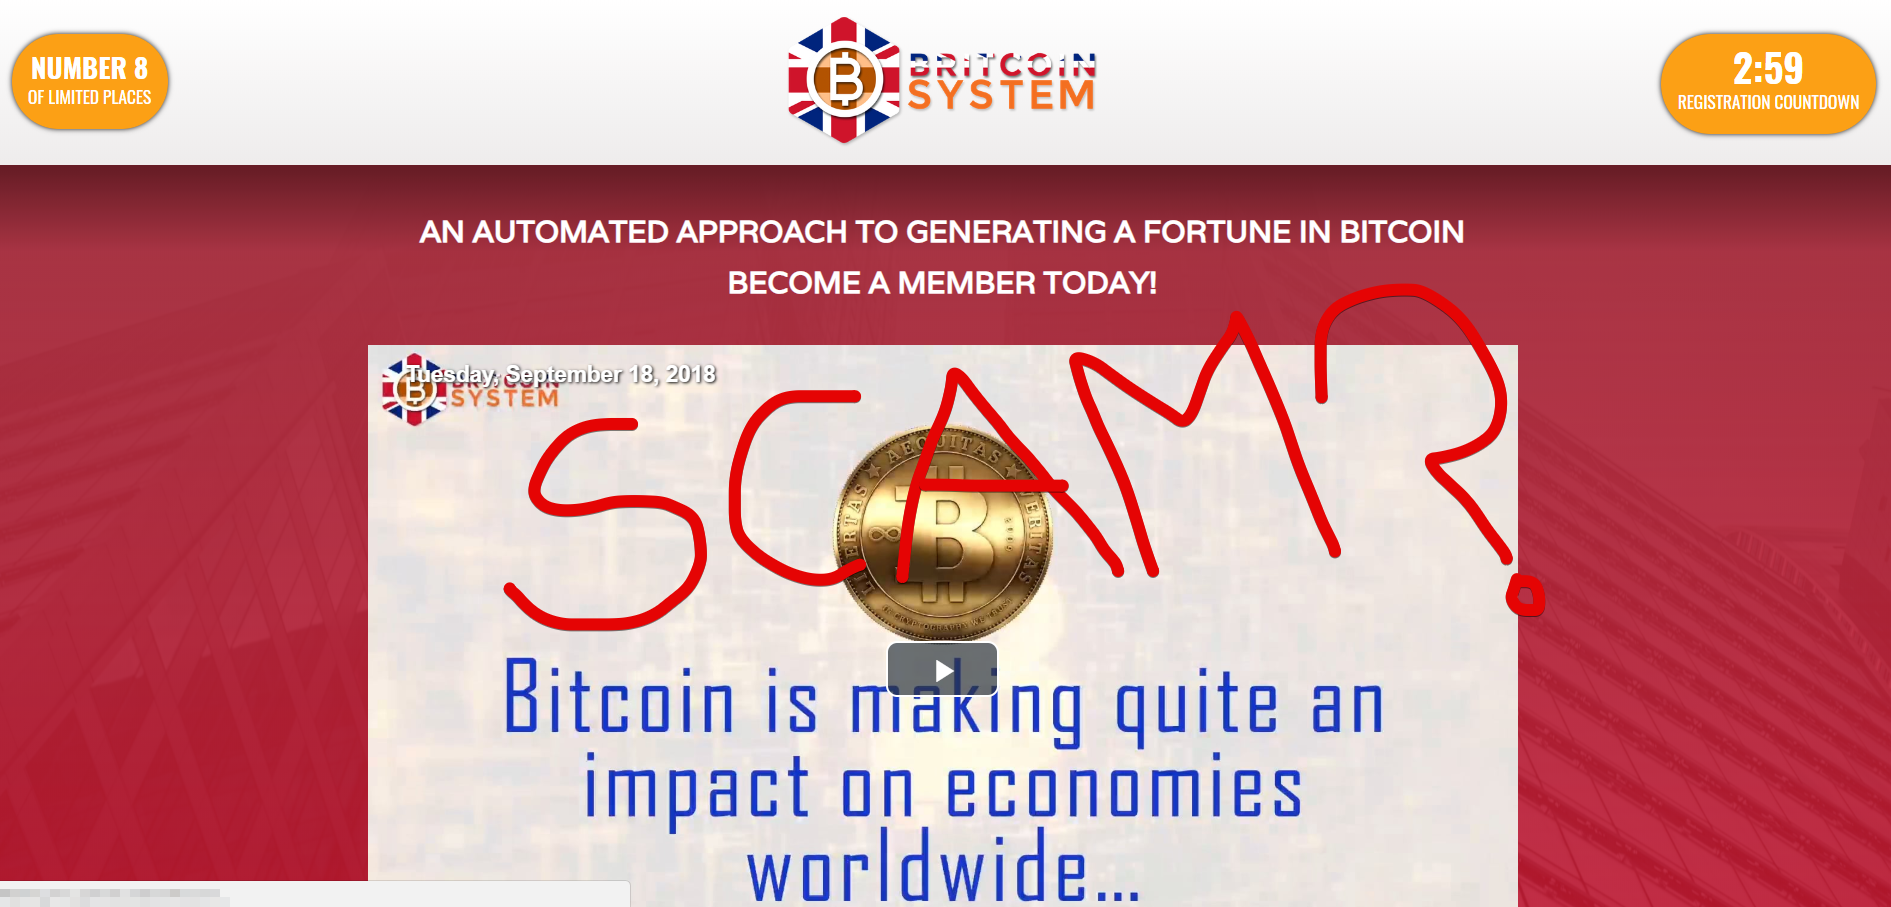 Britcoin System scam